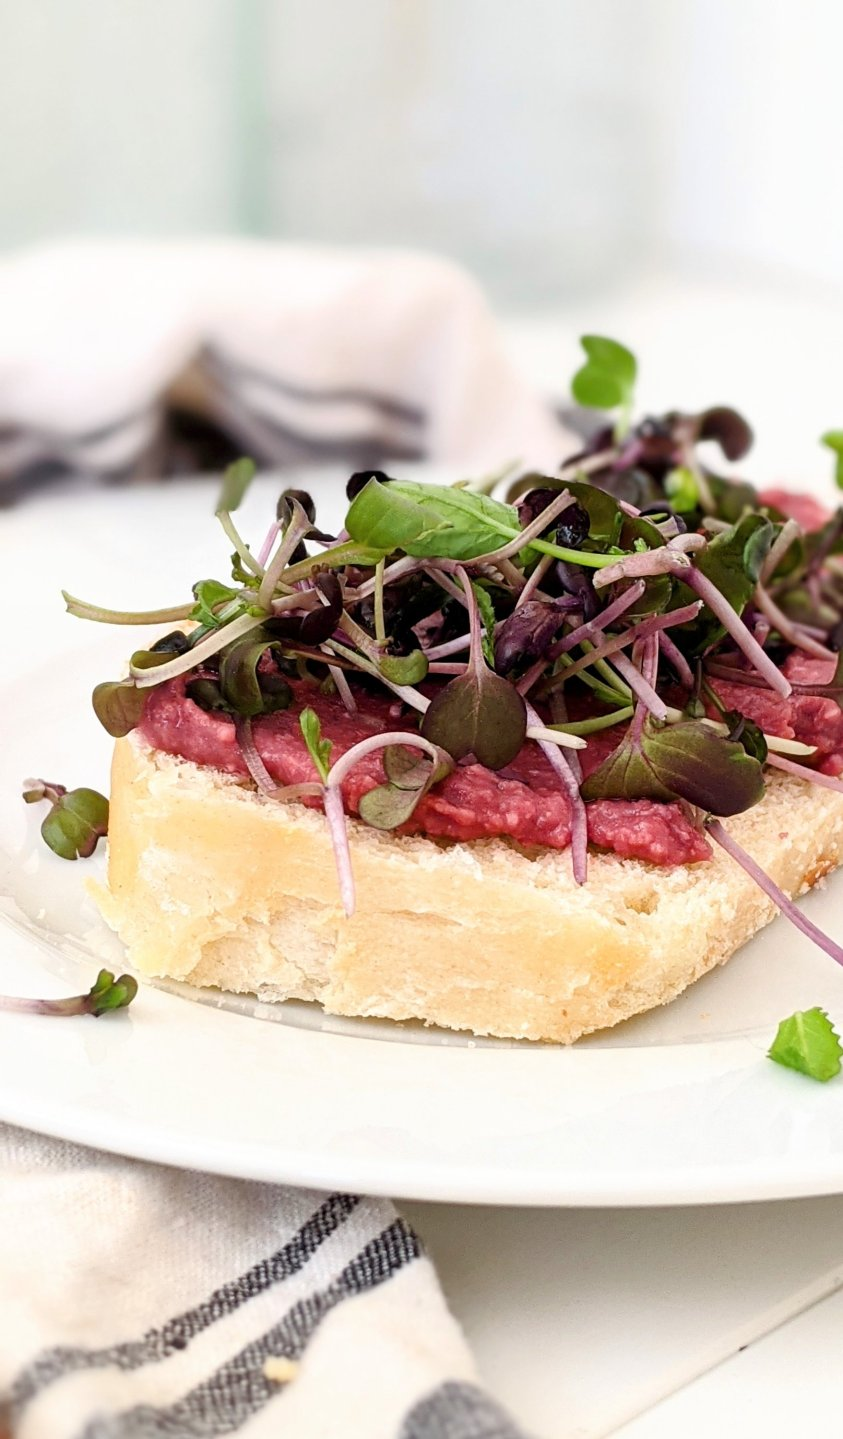 hummus tartine with sprouts and microgreens french beet sandwich french recipes with beetroot healthy breakfast or snack light and high protein french food